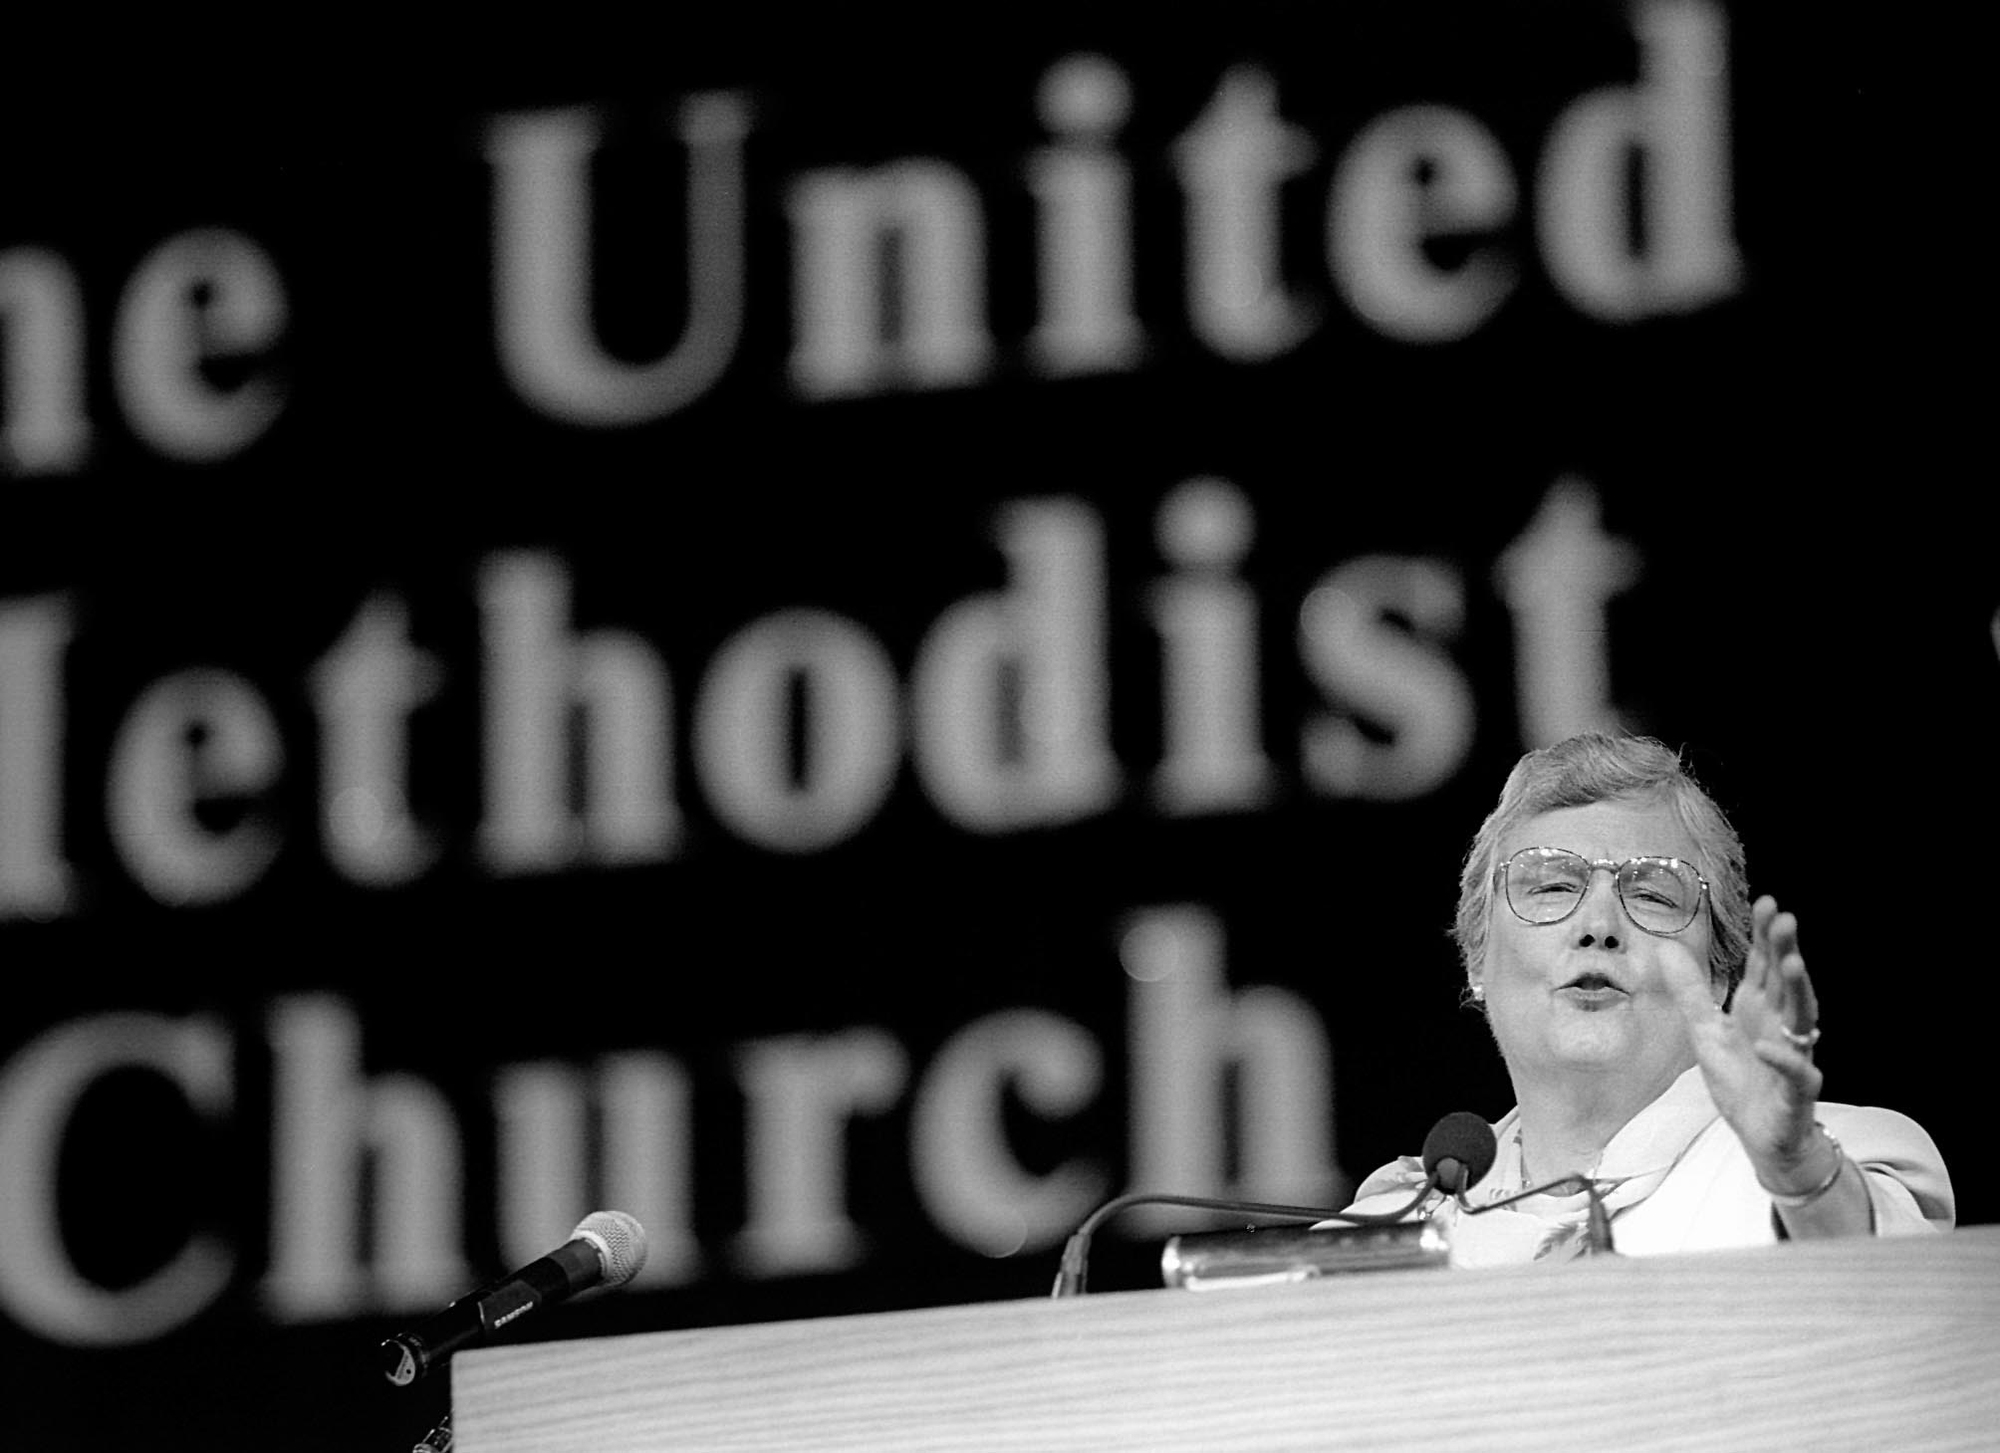 Bishop Judith Craig delivers the Episcopal Address at the 1996 United Methodist General Conference in Denver. Craig was the first woman invited by the Council of Bishops to give the address. File photo by Mike DuBose, UMNS.